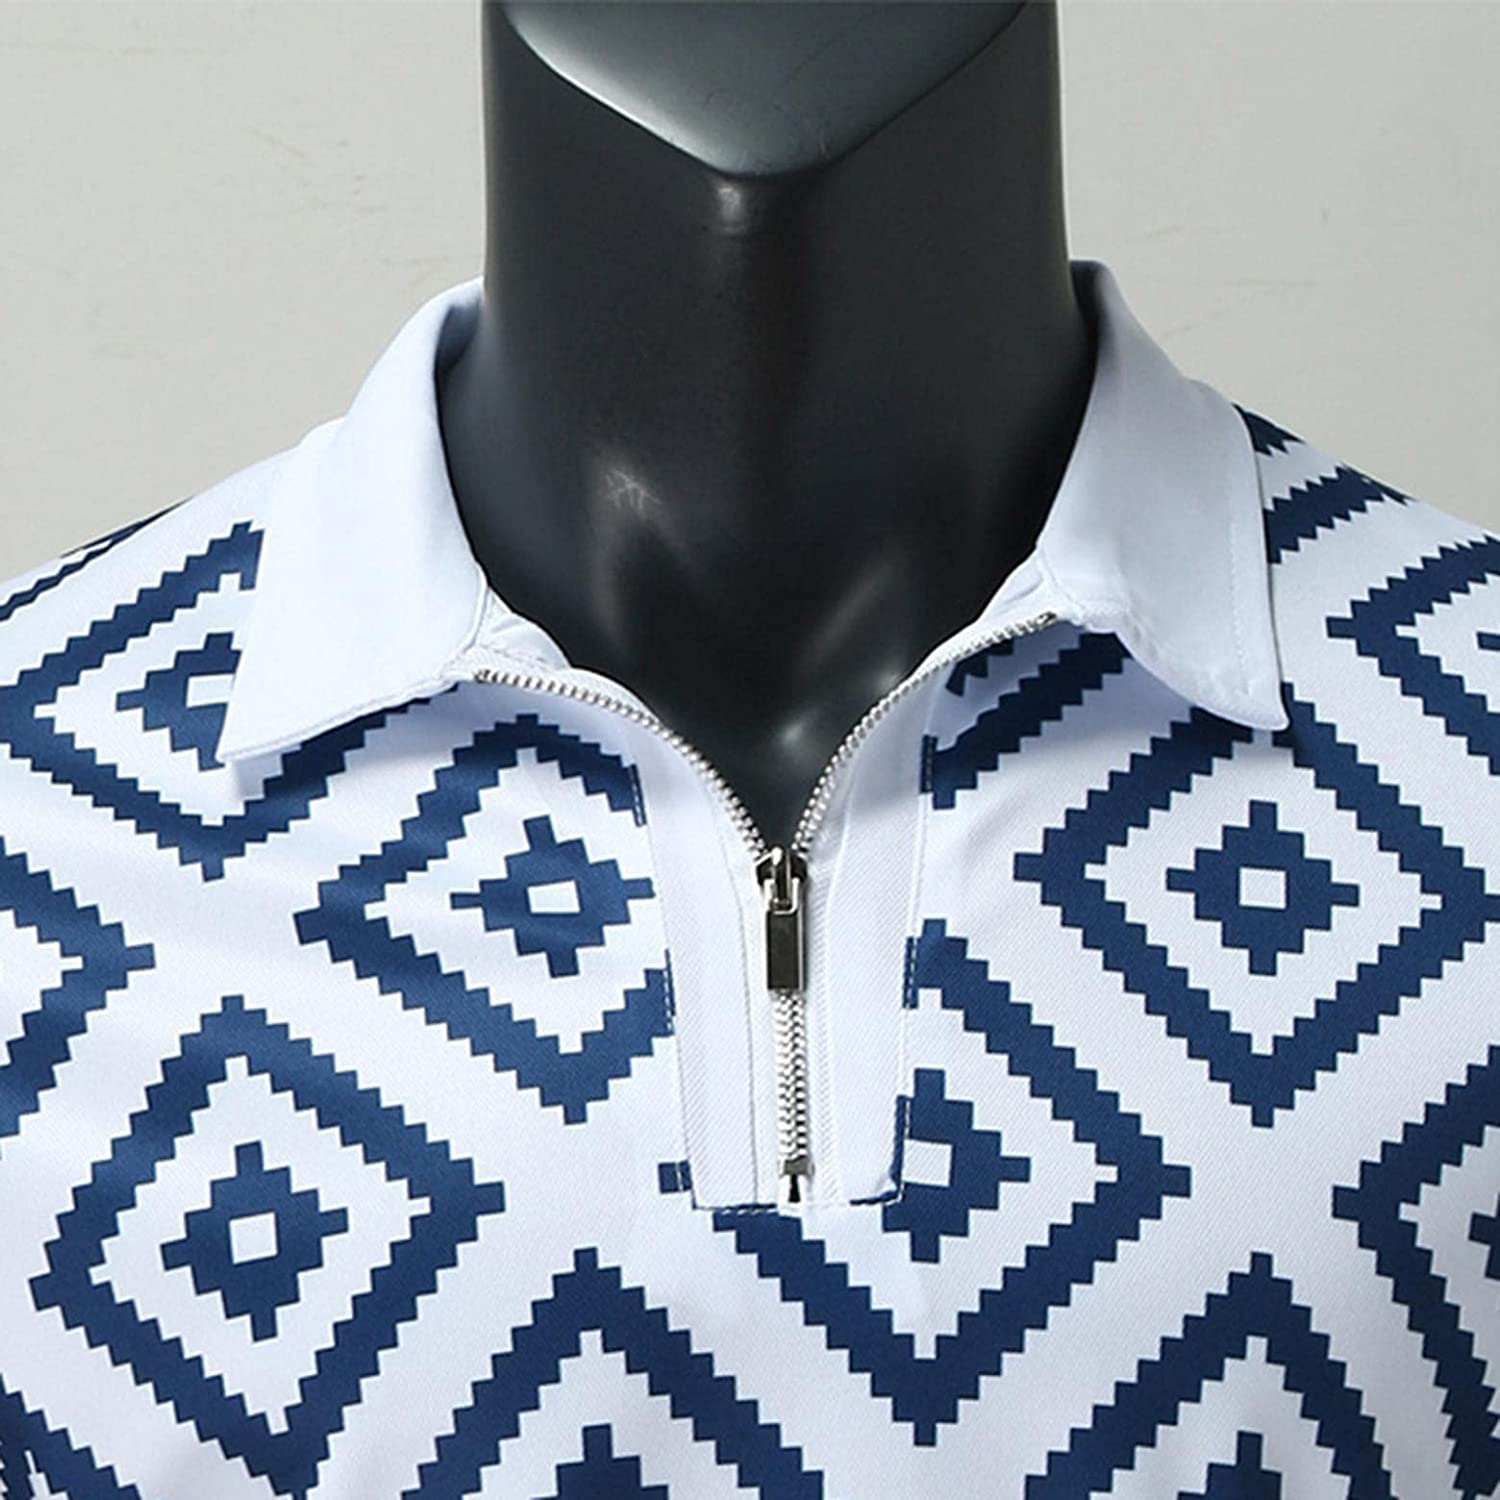 Polo Shirts for Men Short Sleeve Polka Dots Printed Zipper Sweatshirts Casual Slim Business Pullover Blouse Soft Tops